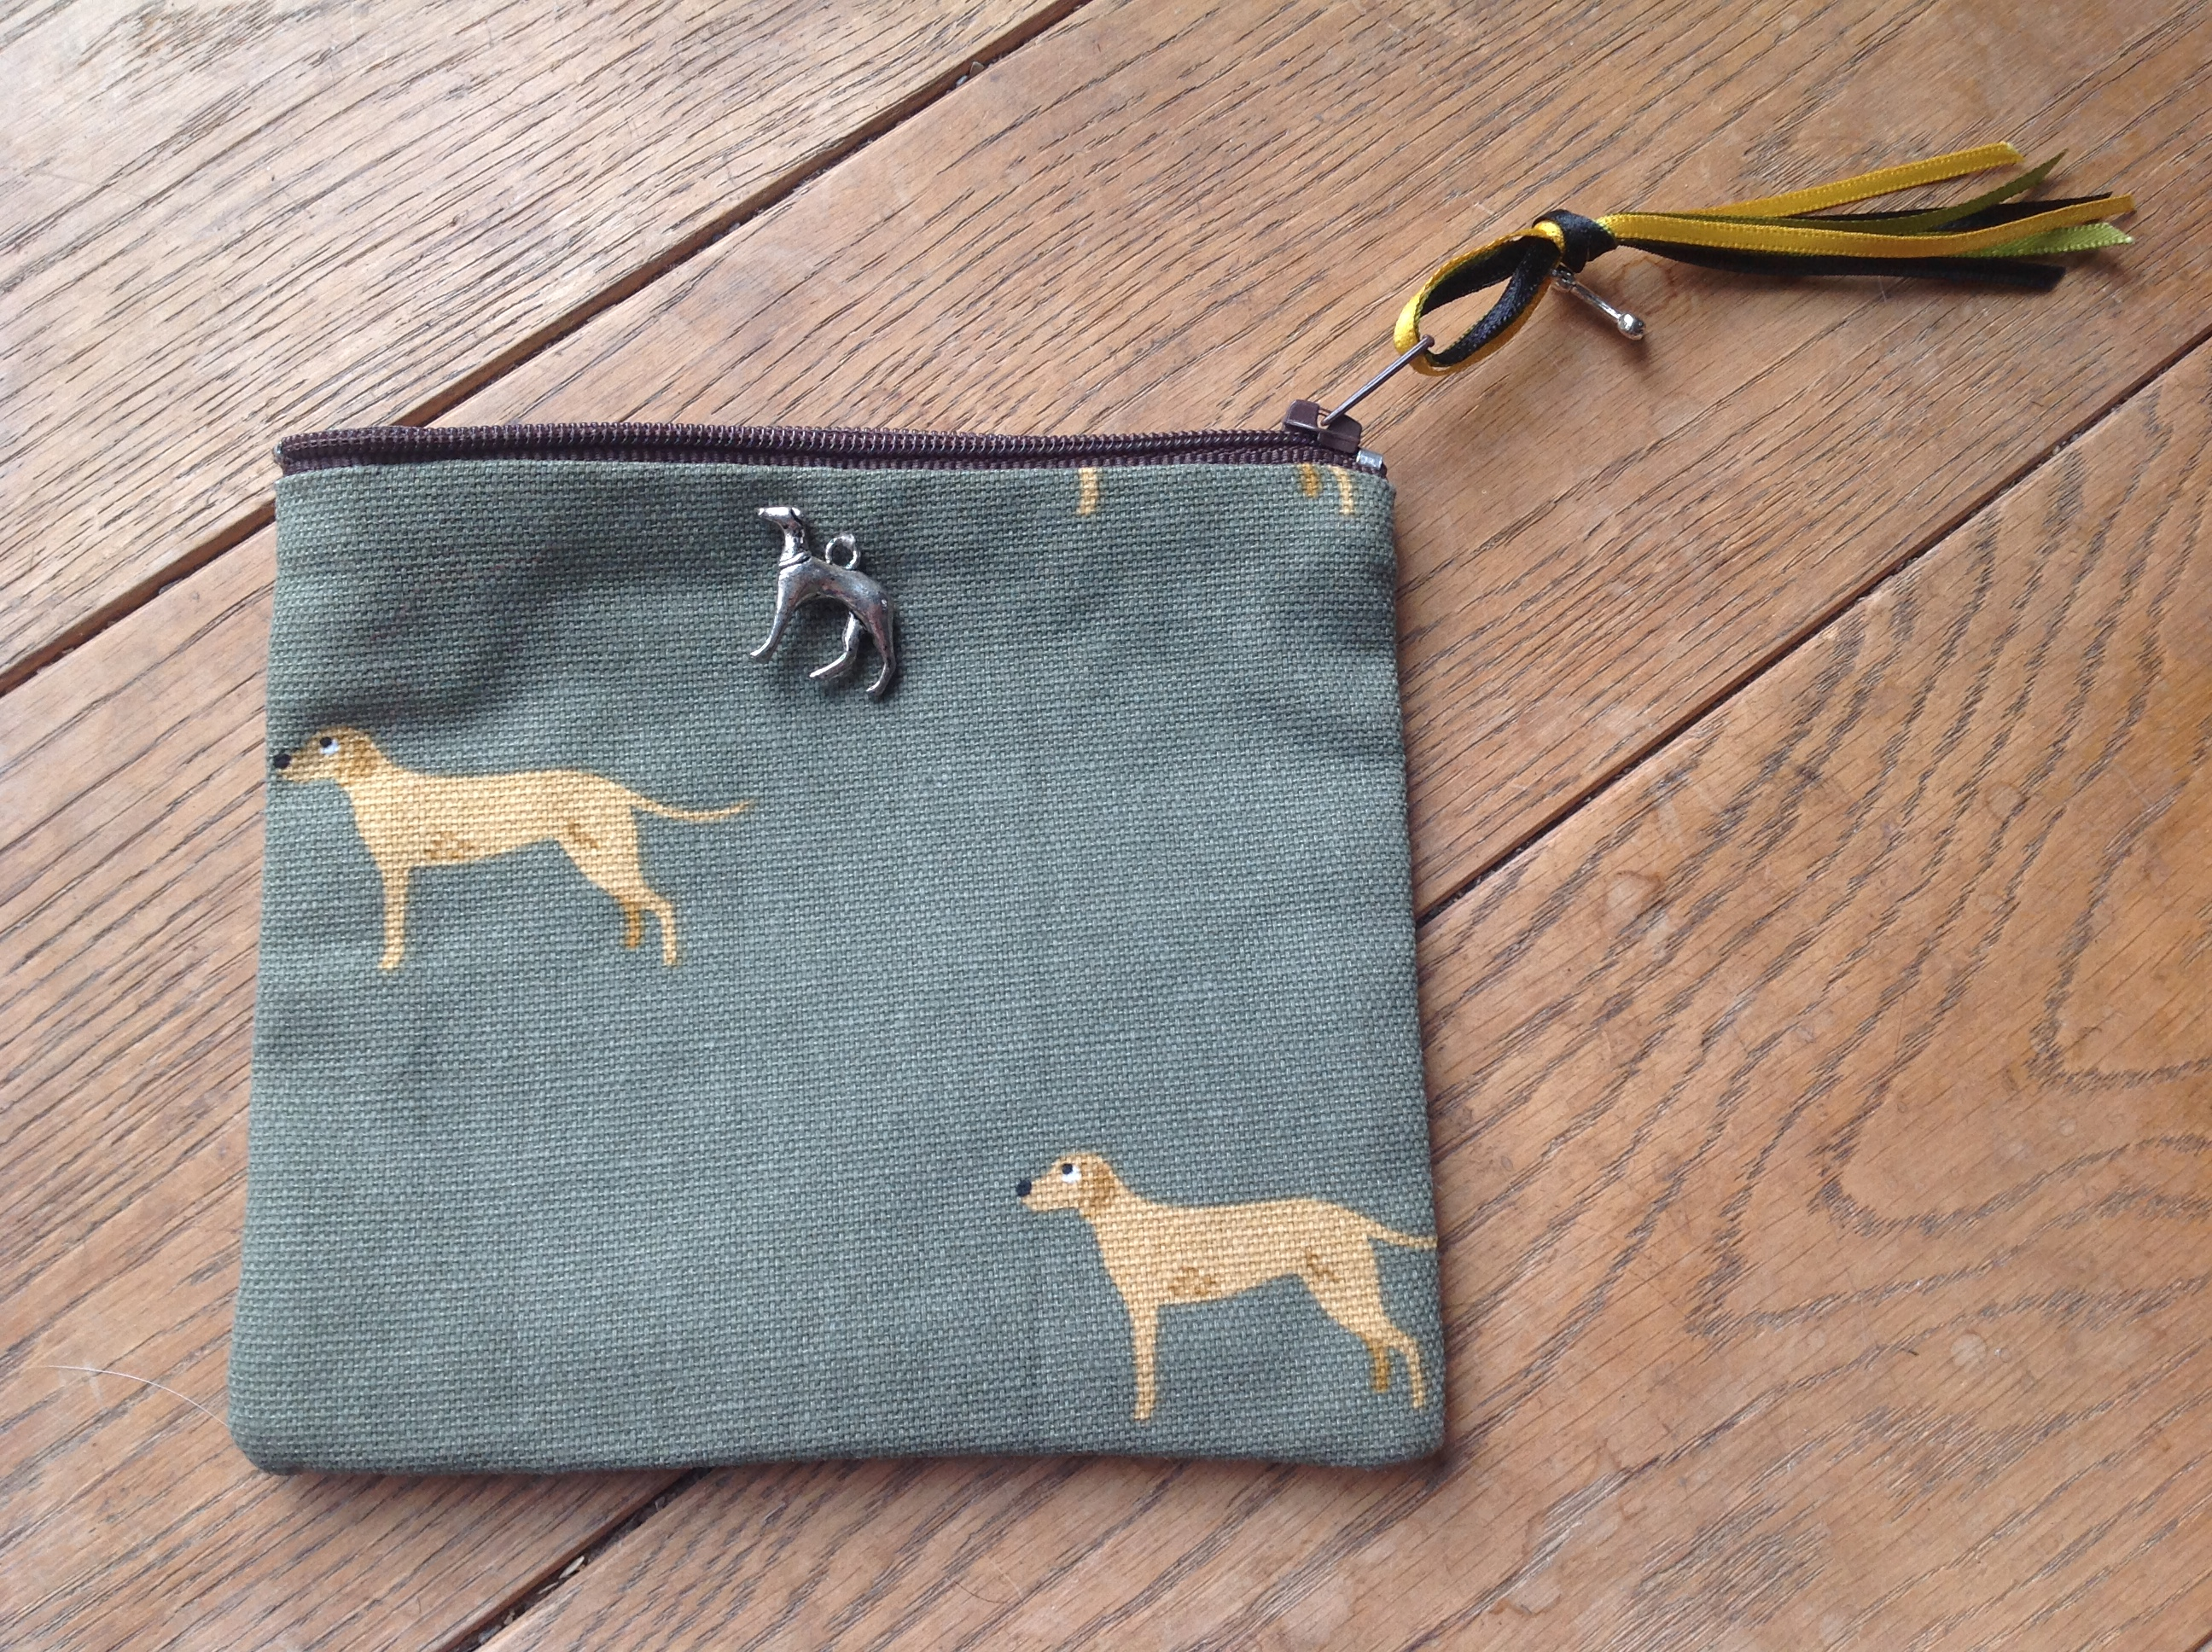 Coin purse - Sophie Allport Retrievers design